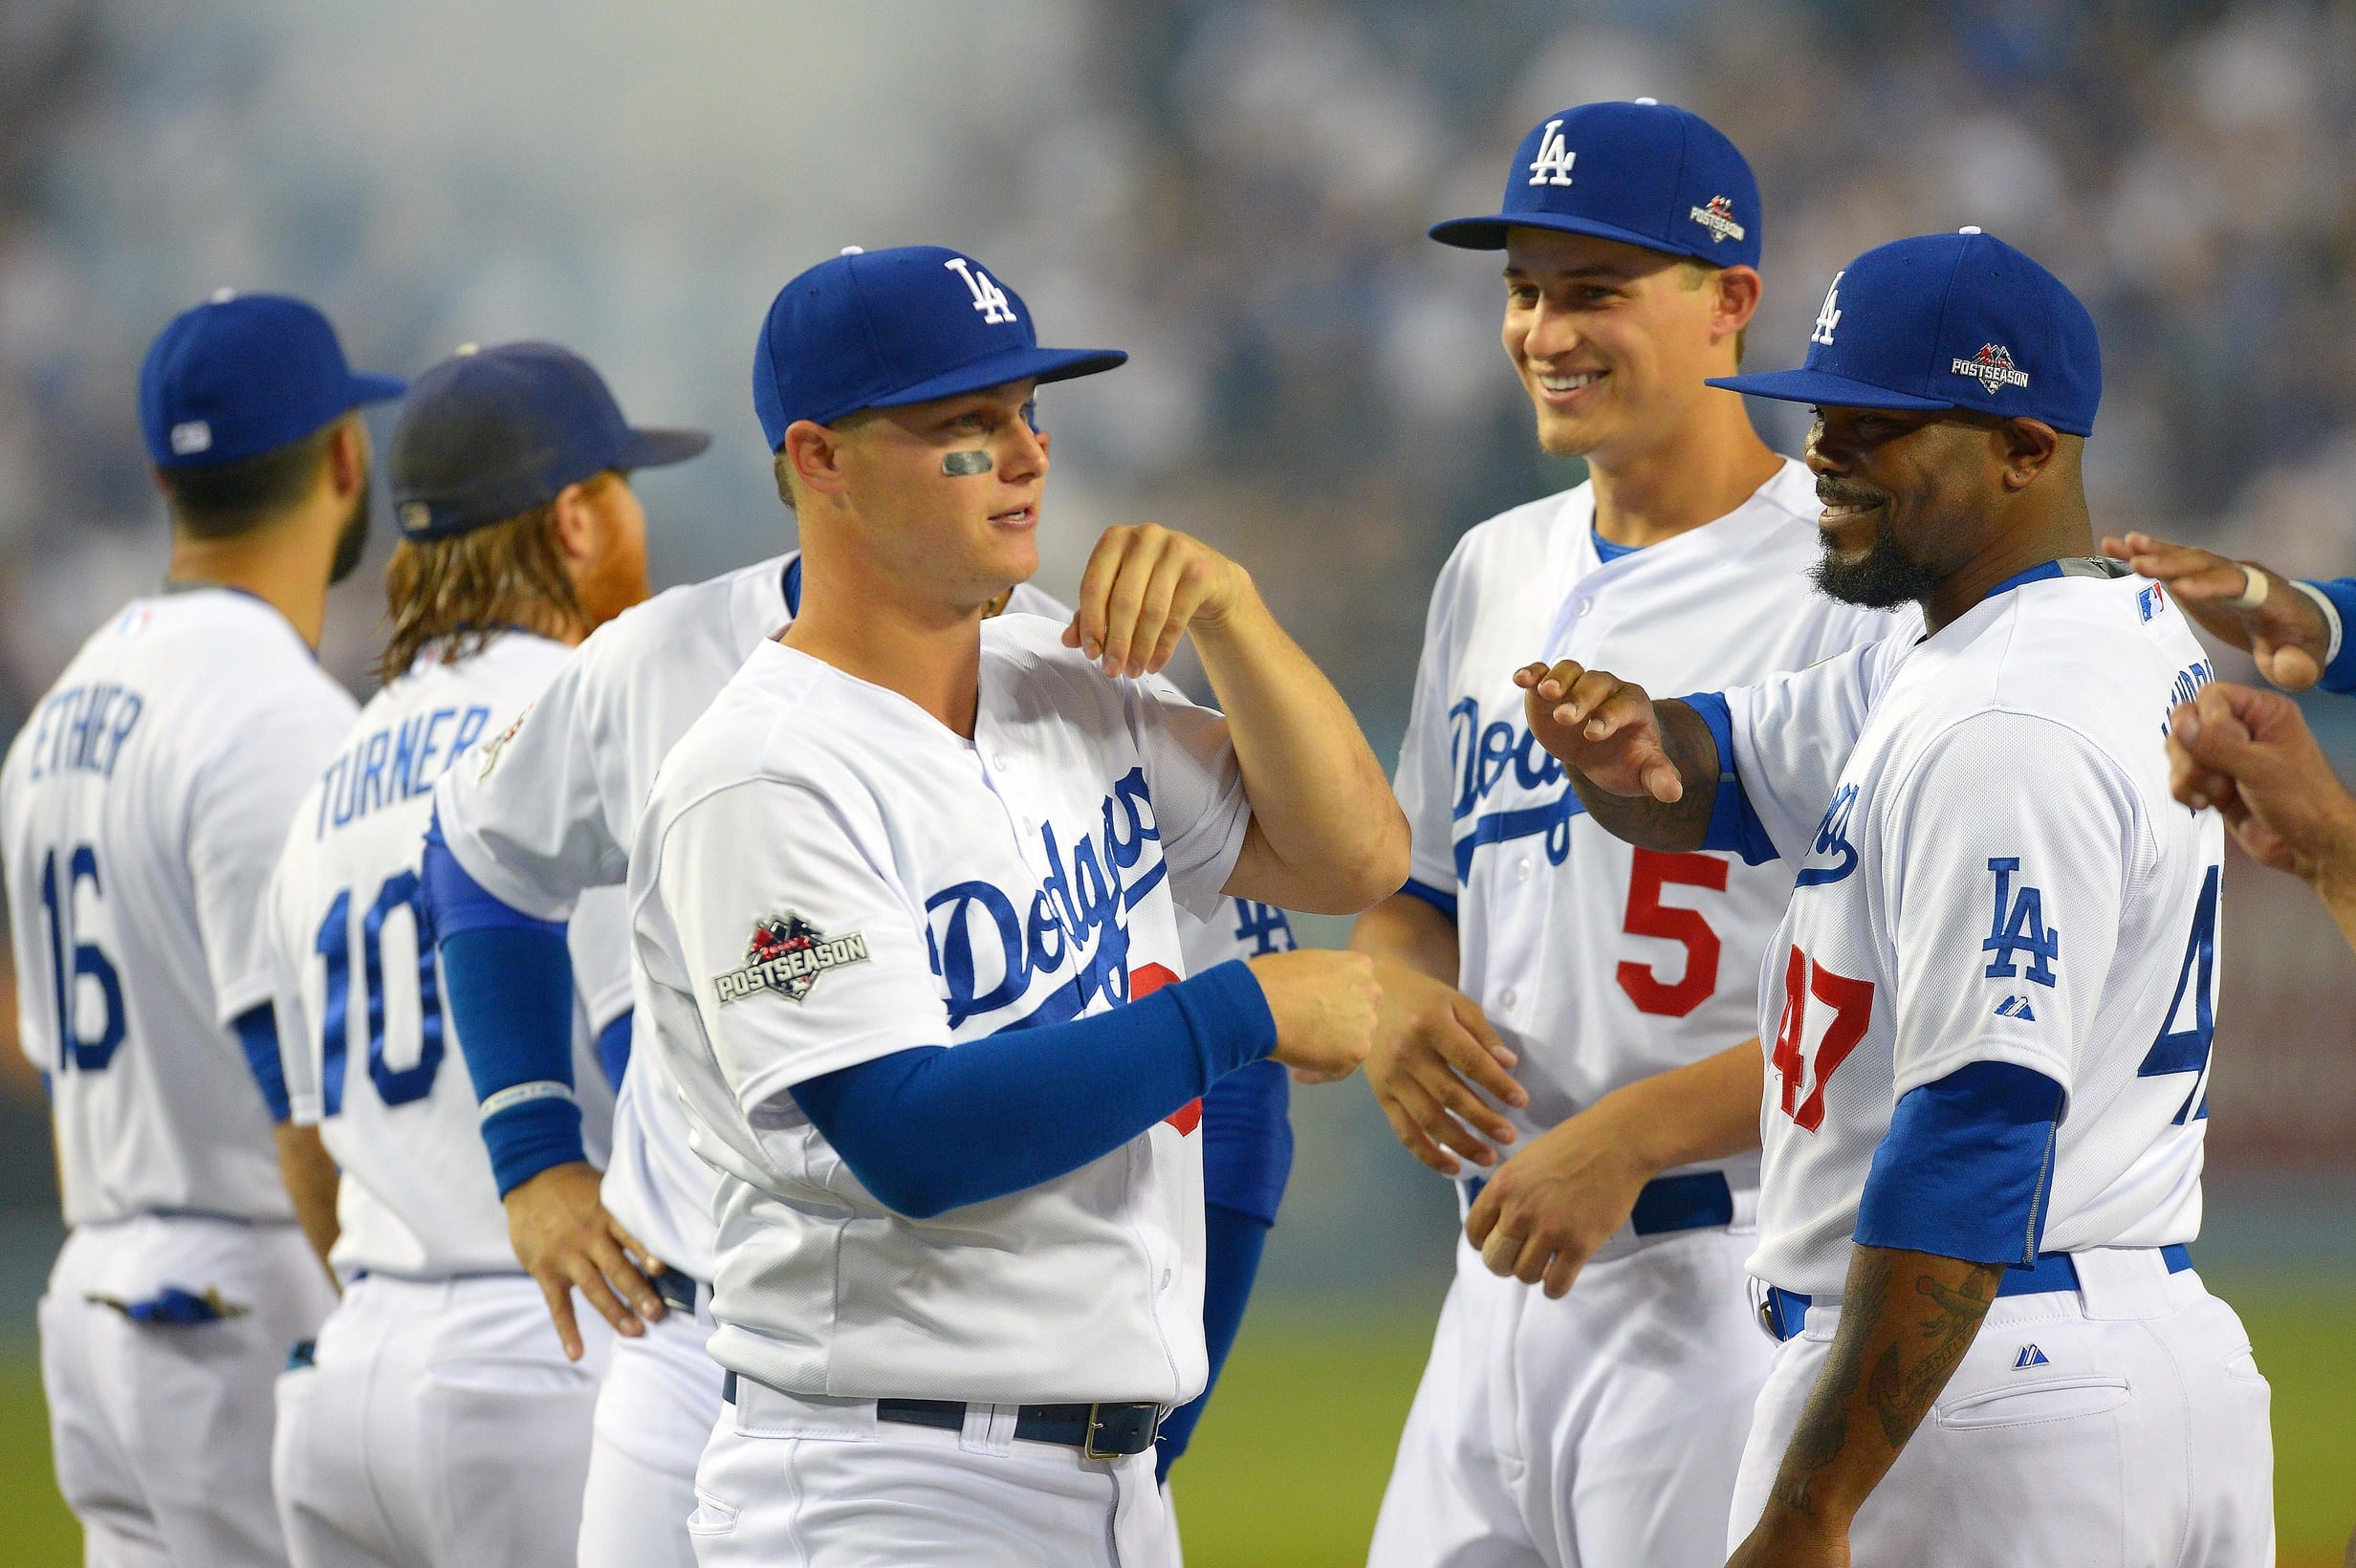 What The Dodgers Can Learn From The Royals